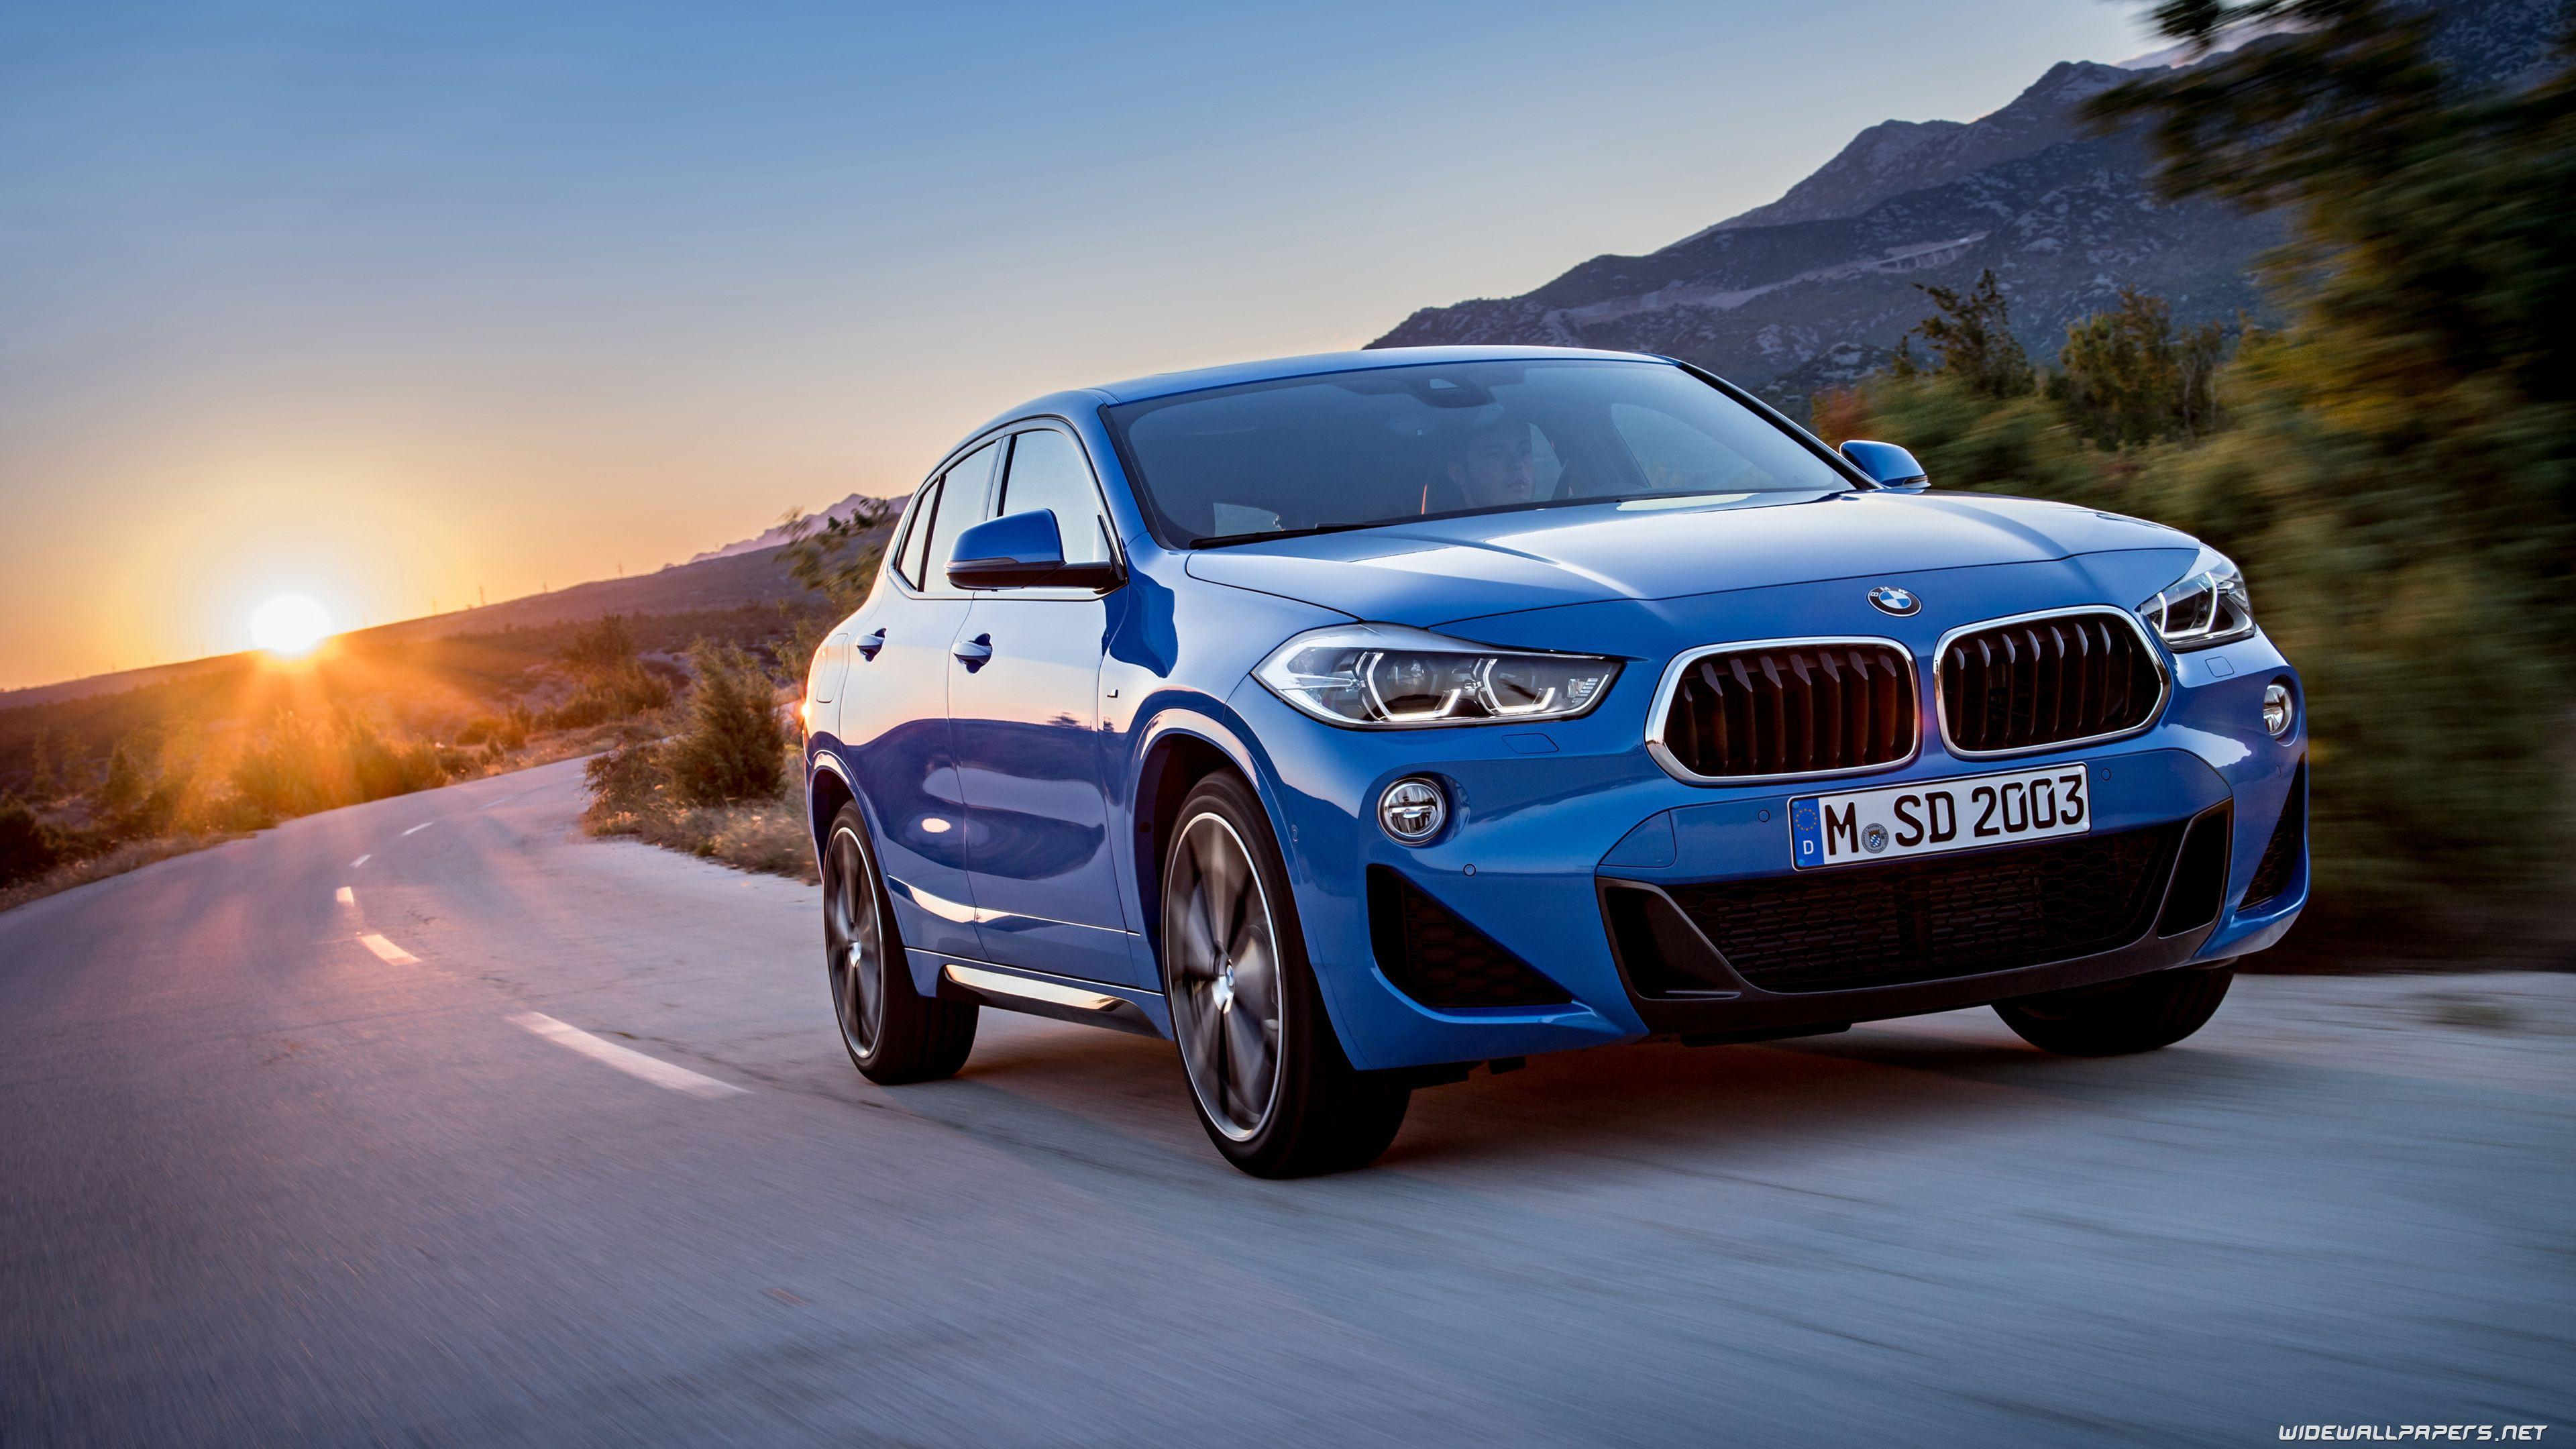 BMW X2 cars desktop wallpapers 4K Ultra HD